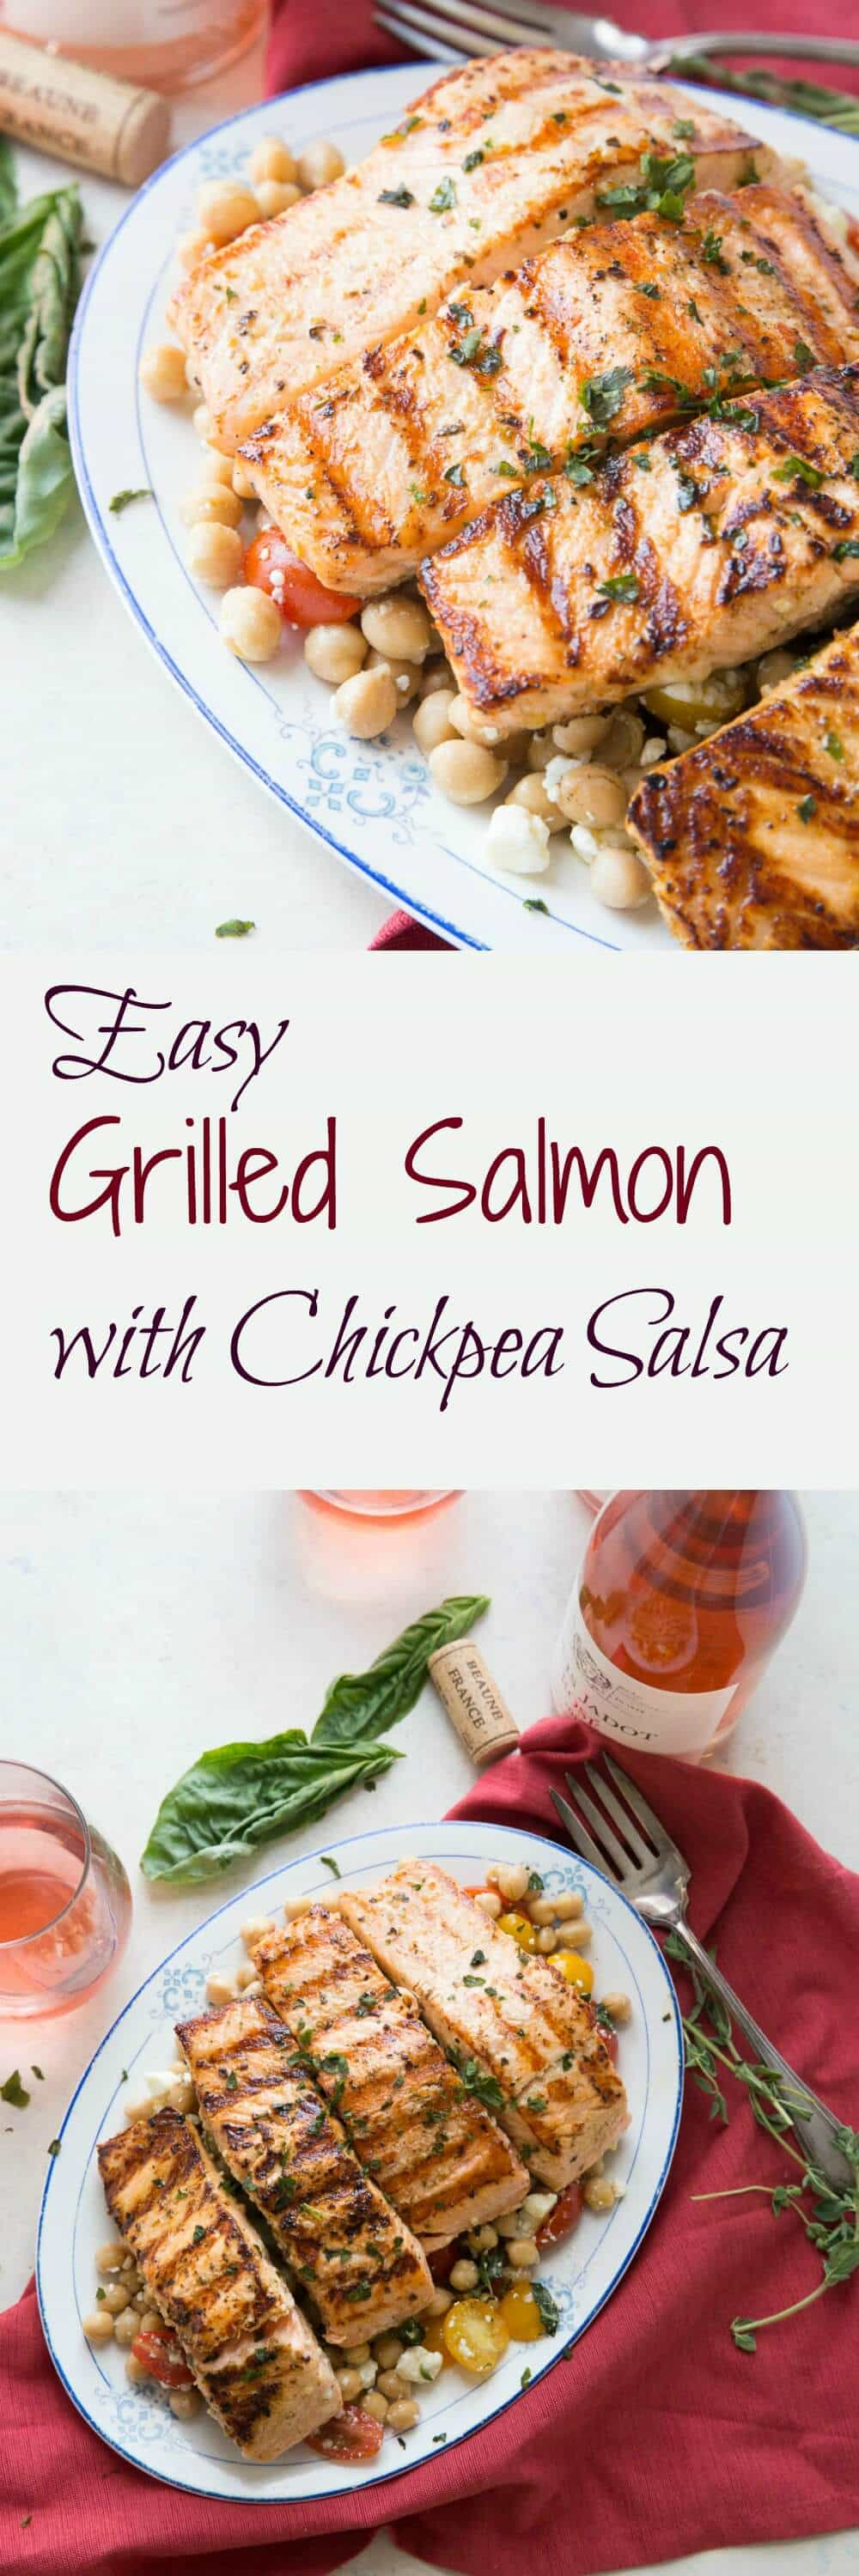 Salmon is such a mild fish, this easy grilled salmon recipe highlights its versatility. When served with the chickpea salsa the dish takes on a Mediterranean flair!